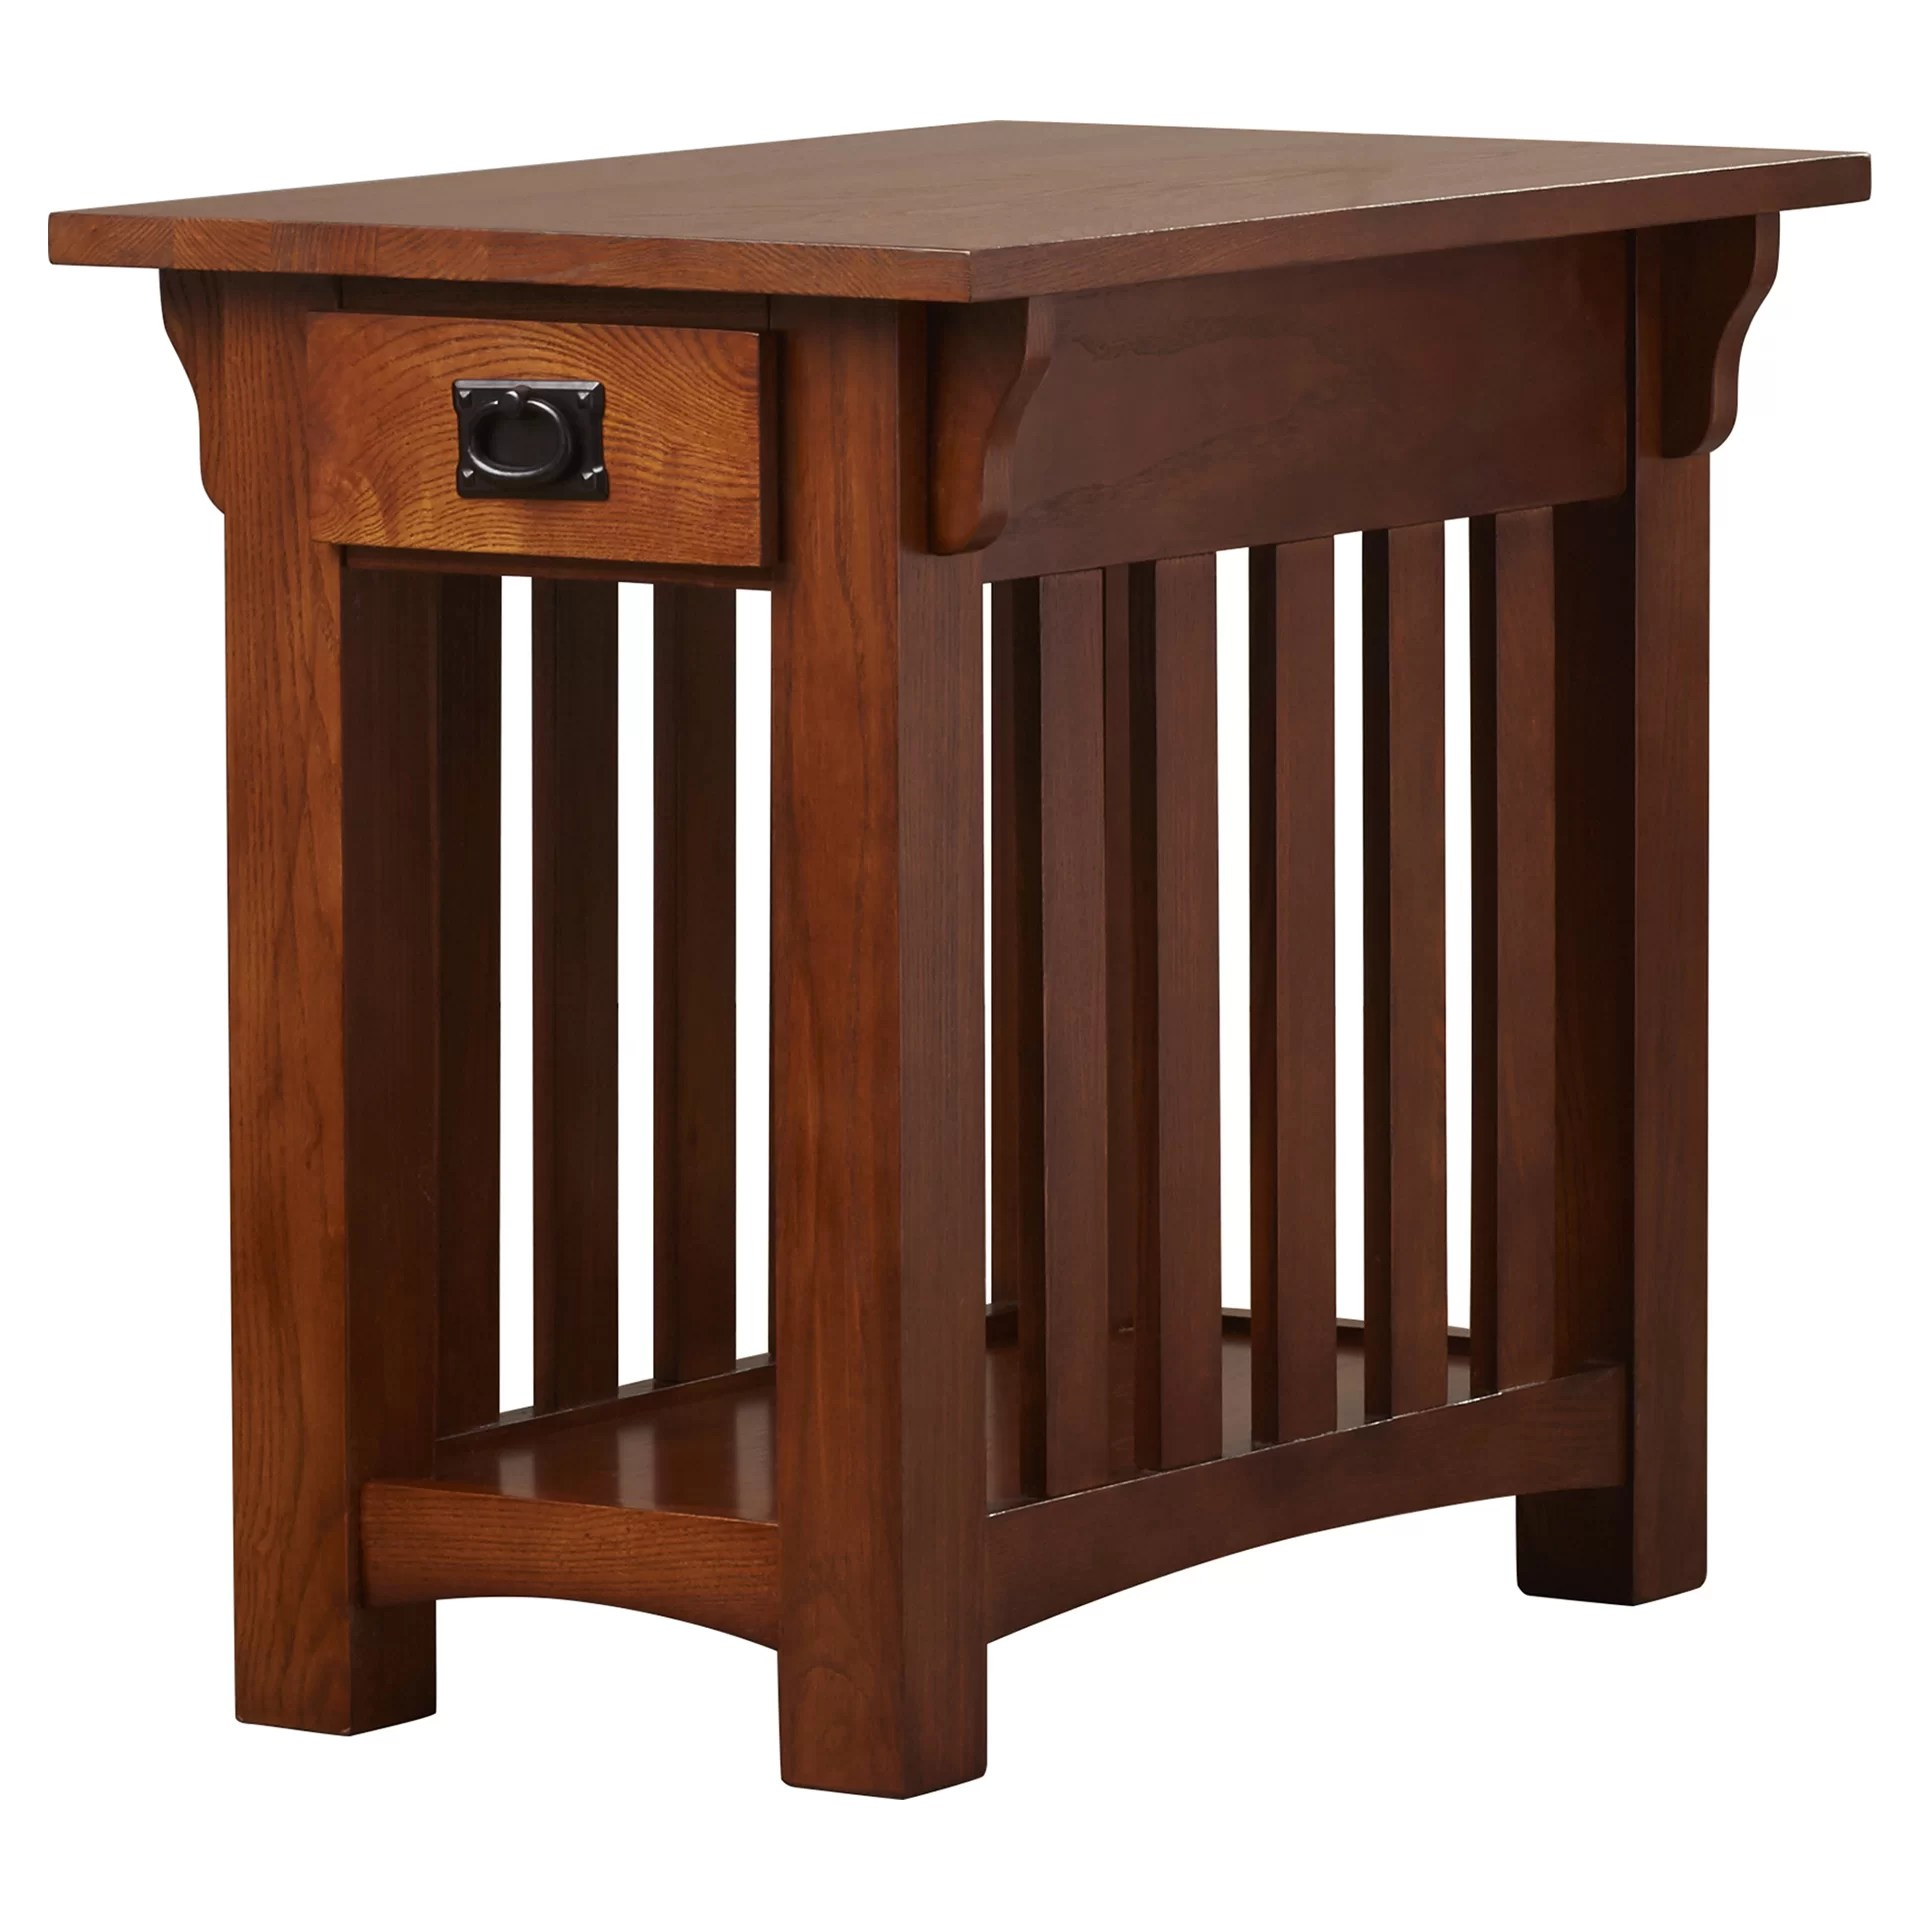 Chair Side Table Leick Mission Impeccable Chairside Table And Reviews Wayfair